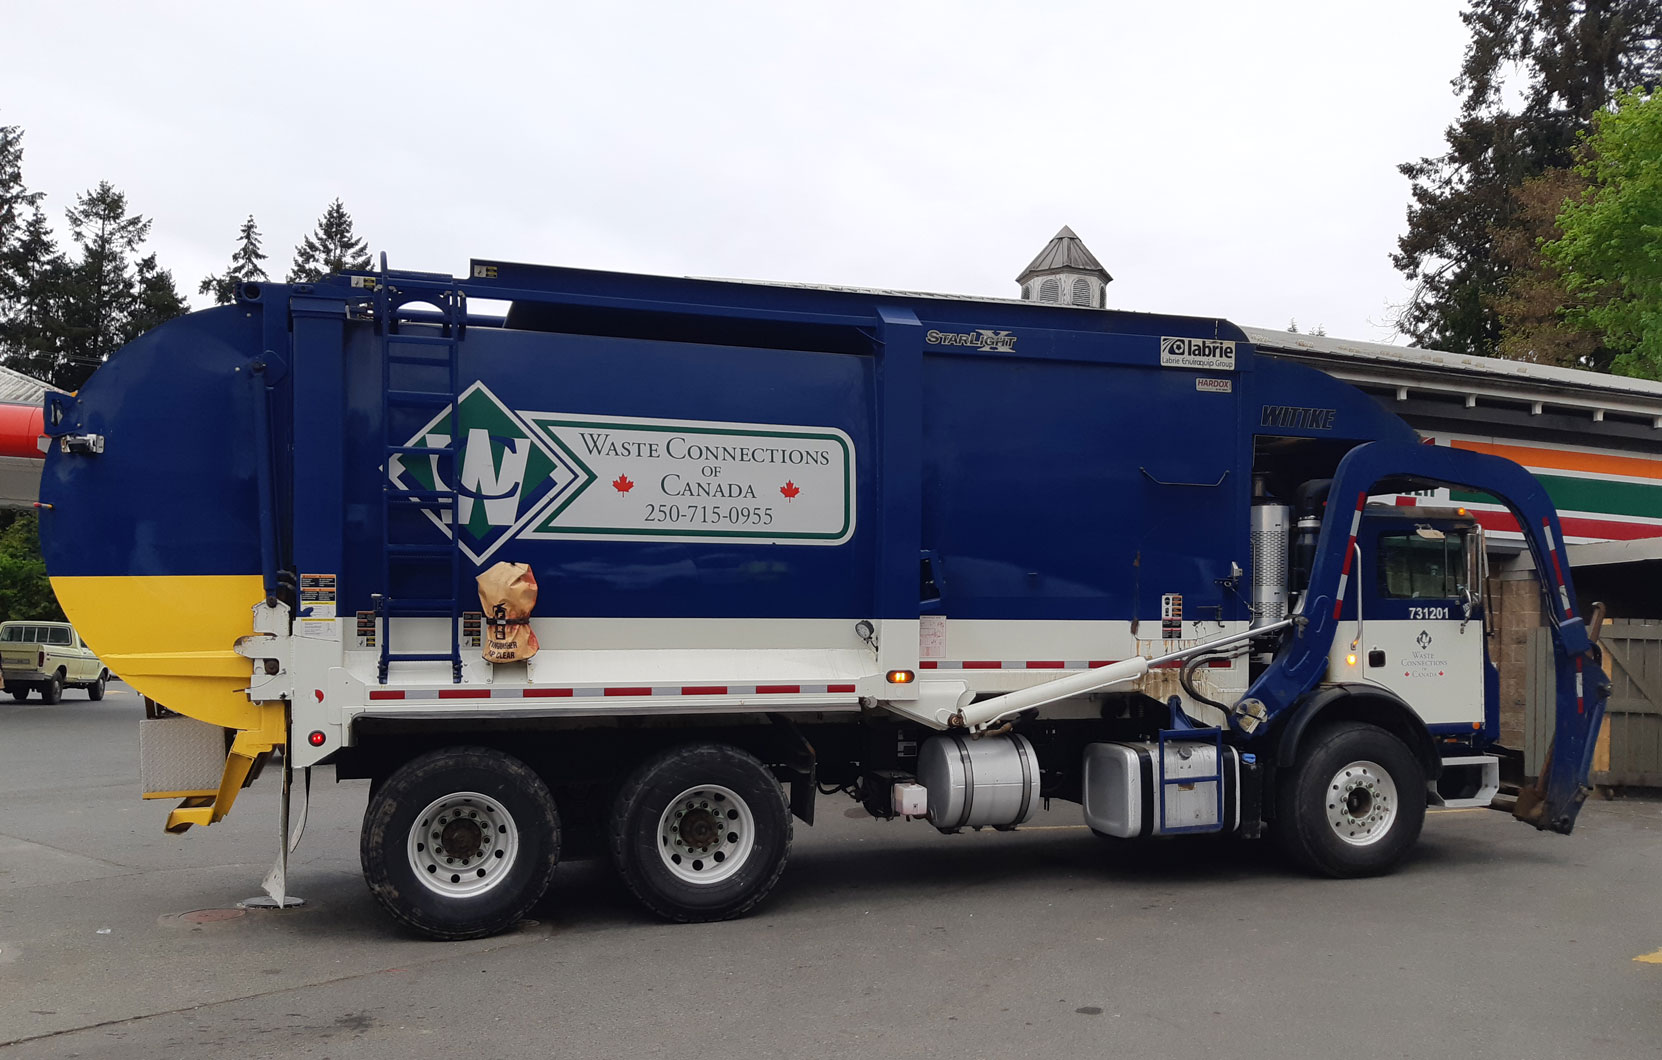 A Waste Connections Of Canada truck in Duncan, BC, April 2021 (photo: West Coast Driver Training)